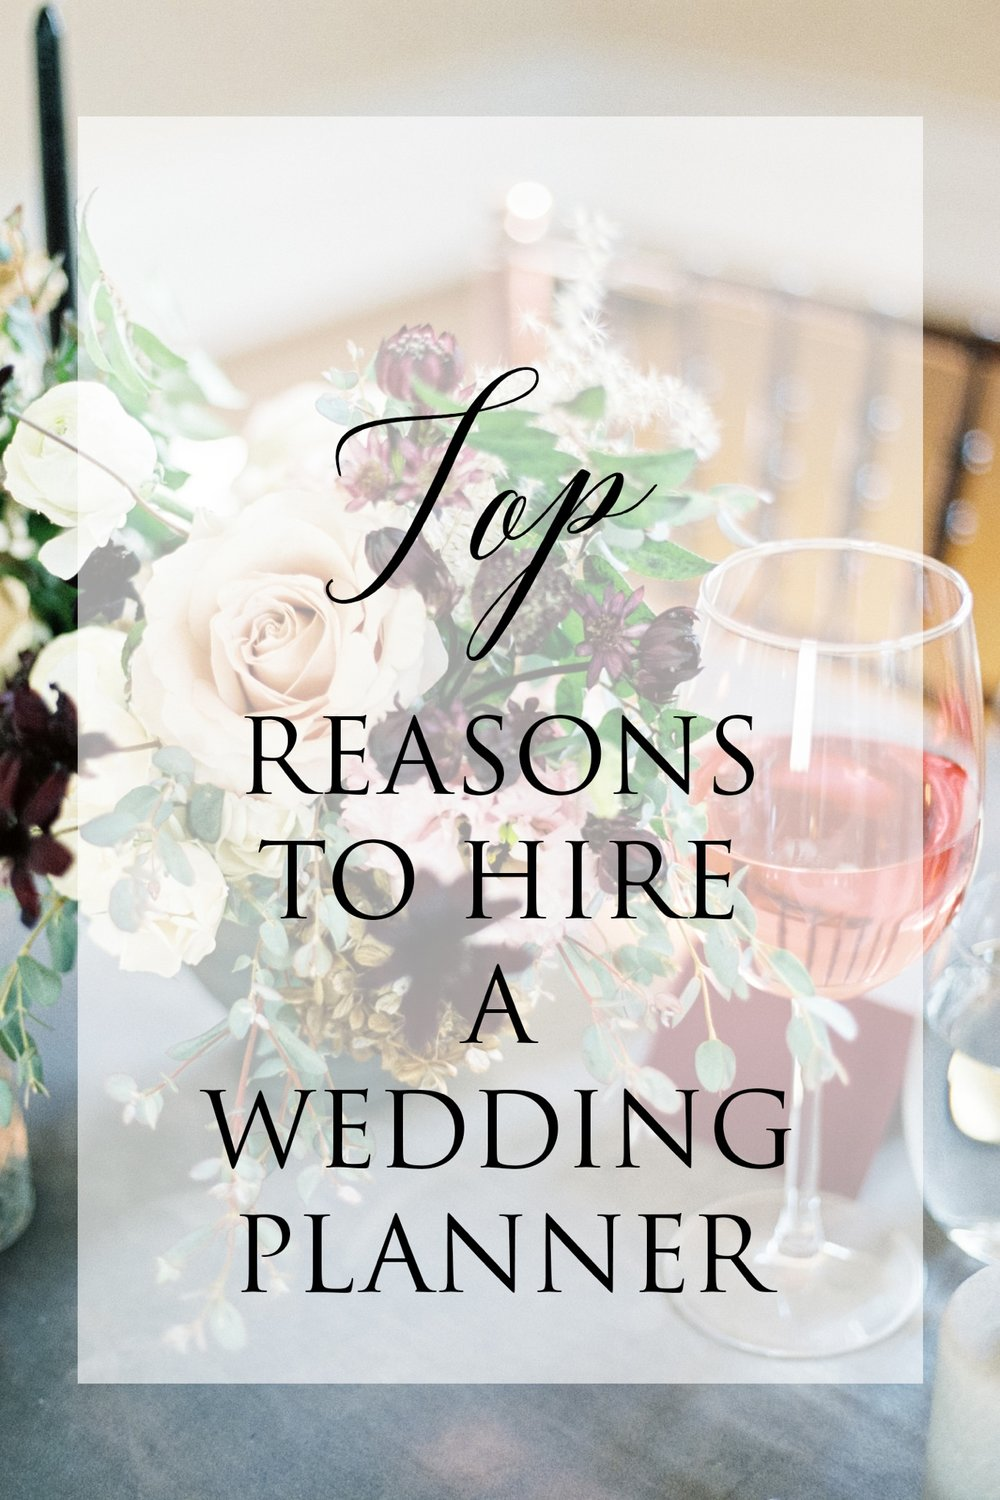 Why Hire a Wedding Planner? - One of the best ways to make the process smoother (while keeping your sanity!) is to hire a professional wedding planner. And here's why they're worth it...read more